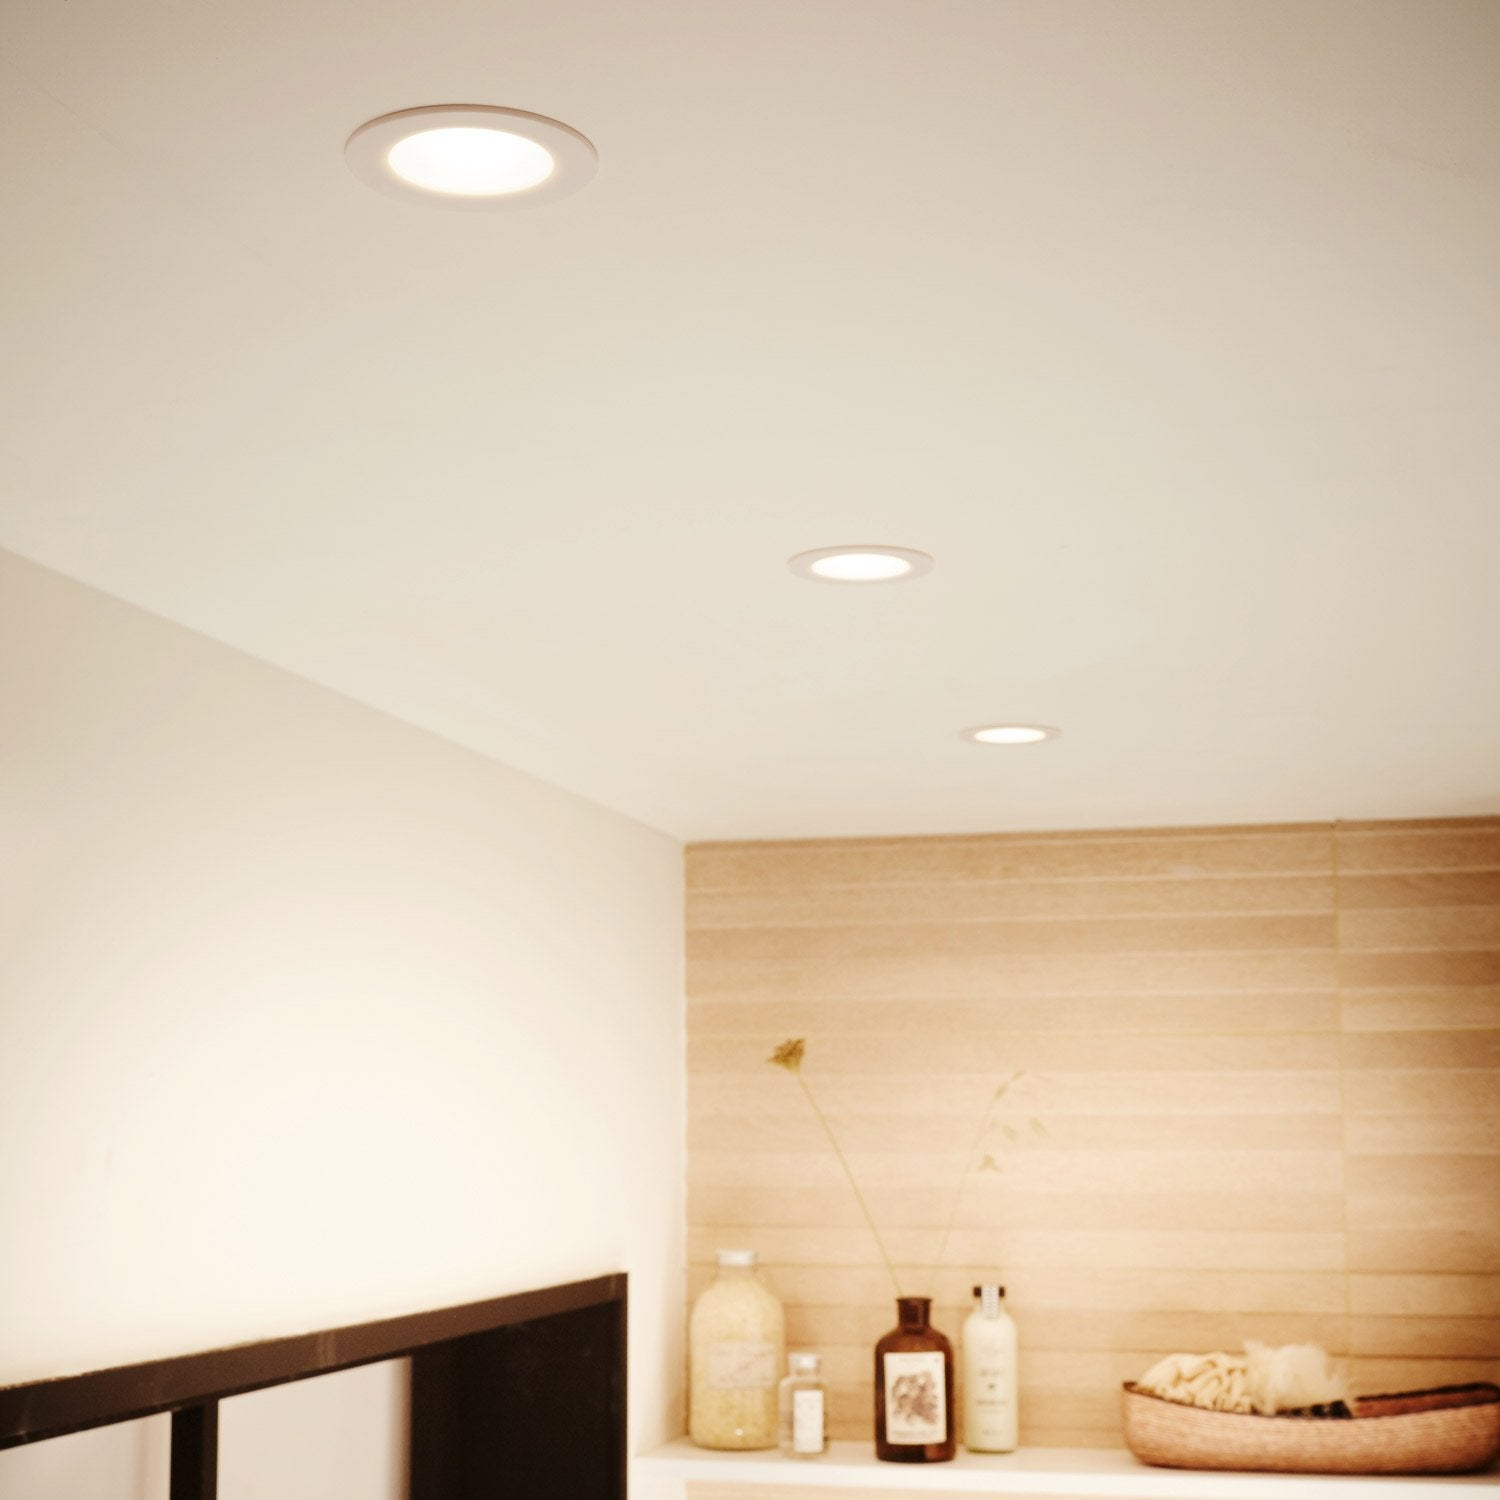 Spot plafond chambre spot encastrable a led spot de for Spot faux plafond salon